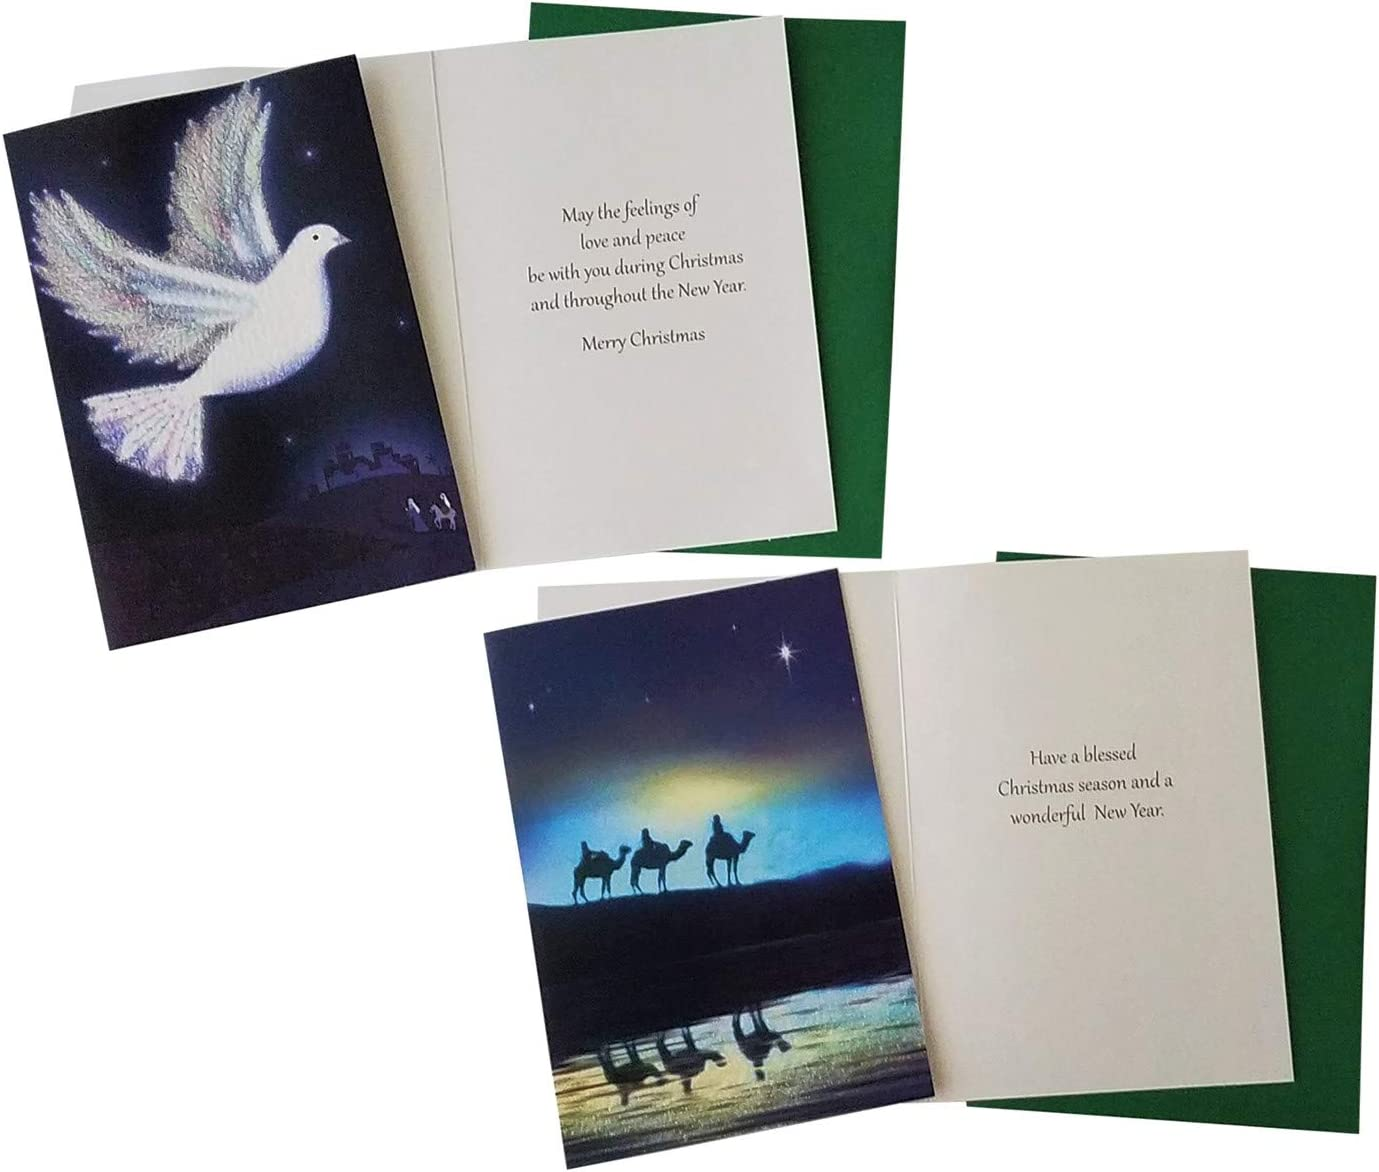 Religious 2 40 Religious Christmas Holiday Boxed Greeting Cards with Envelopes Sentiment and KJV Scripture Inside 5x7 Inch Cards 4 Xmas Designs in Box Sets with Foil Stamp or Glitter